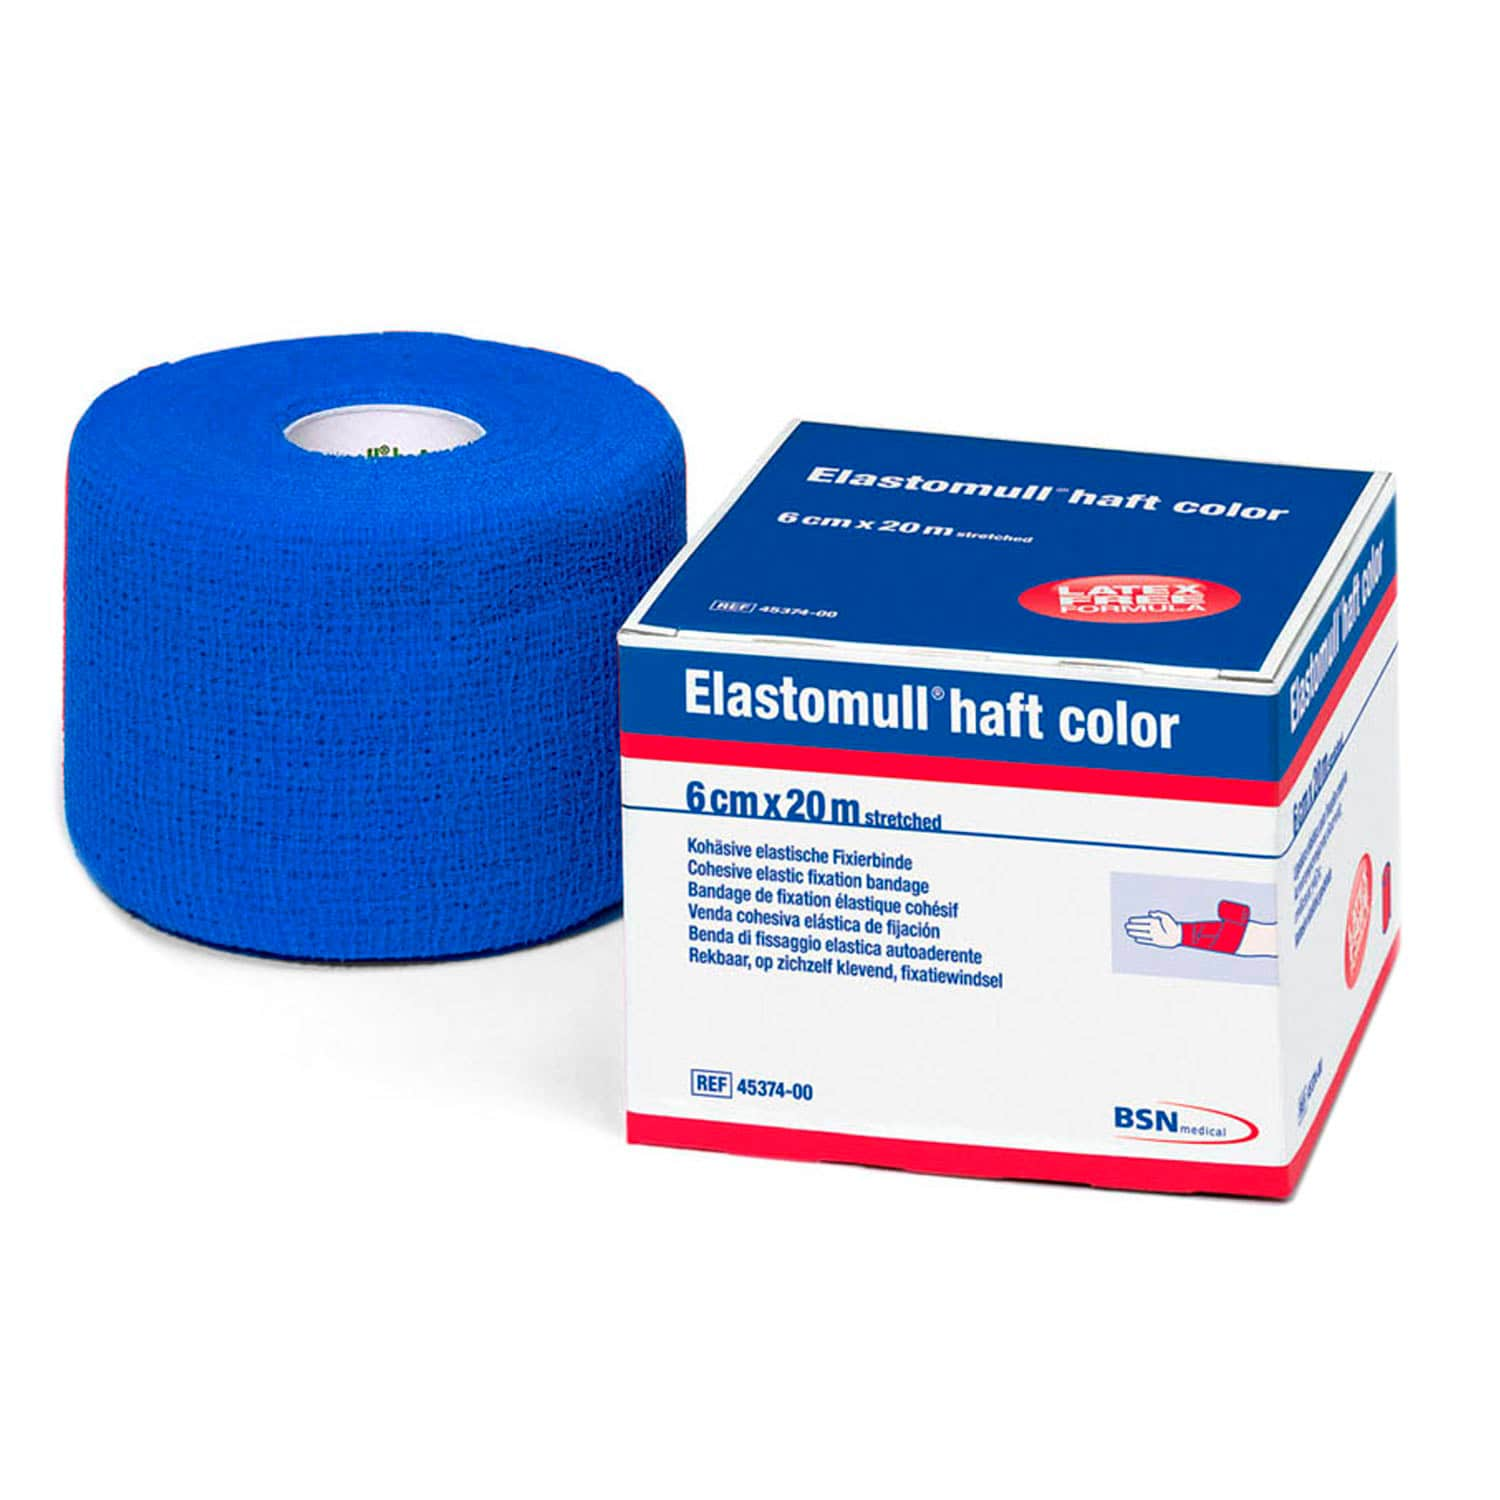 https://static.praxisdienst.com/out/pictures/generated/product/1/1500_1500_100/602154_bsnmedical_elastomull_haft_color_material_blau(1).jpg